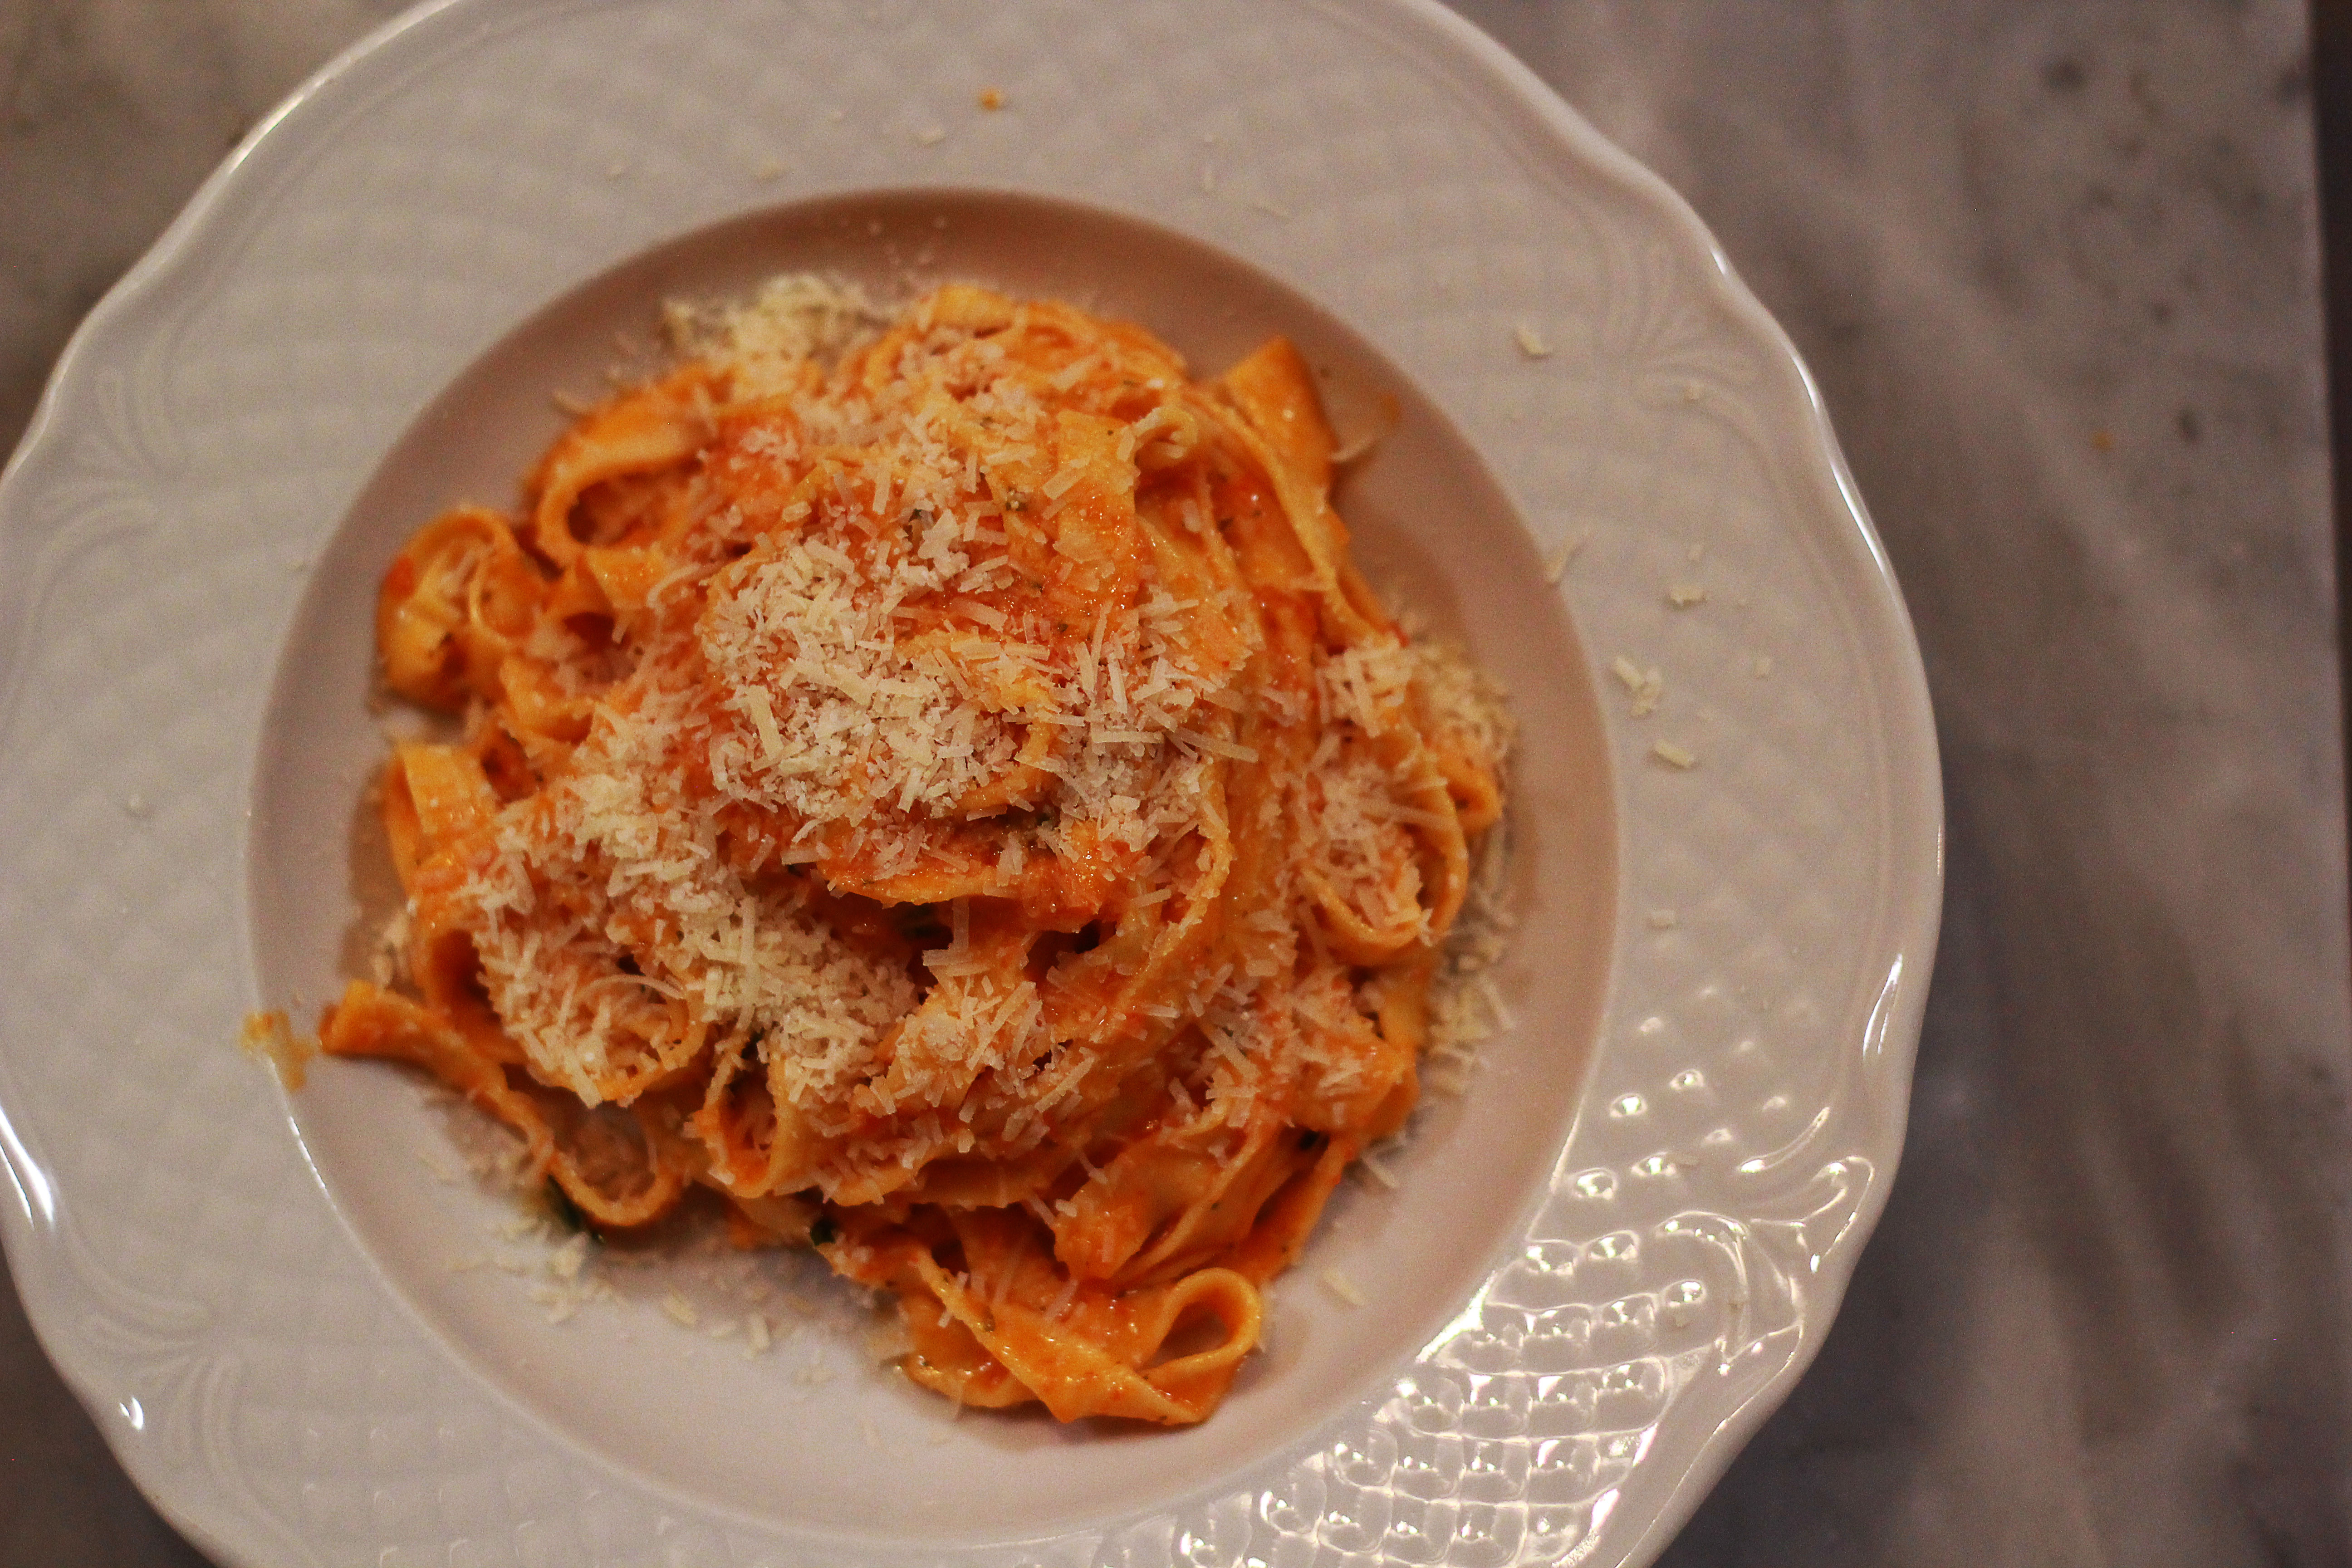 #LocalFoodieFriday: At The Italian Table